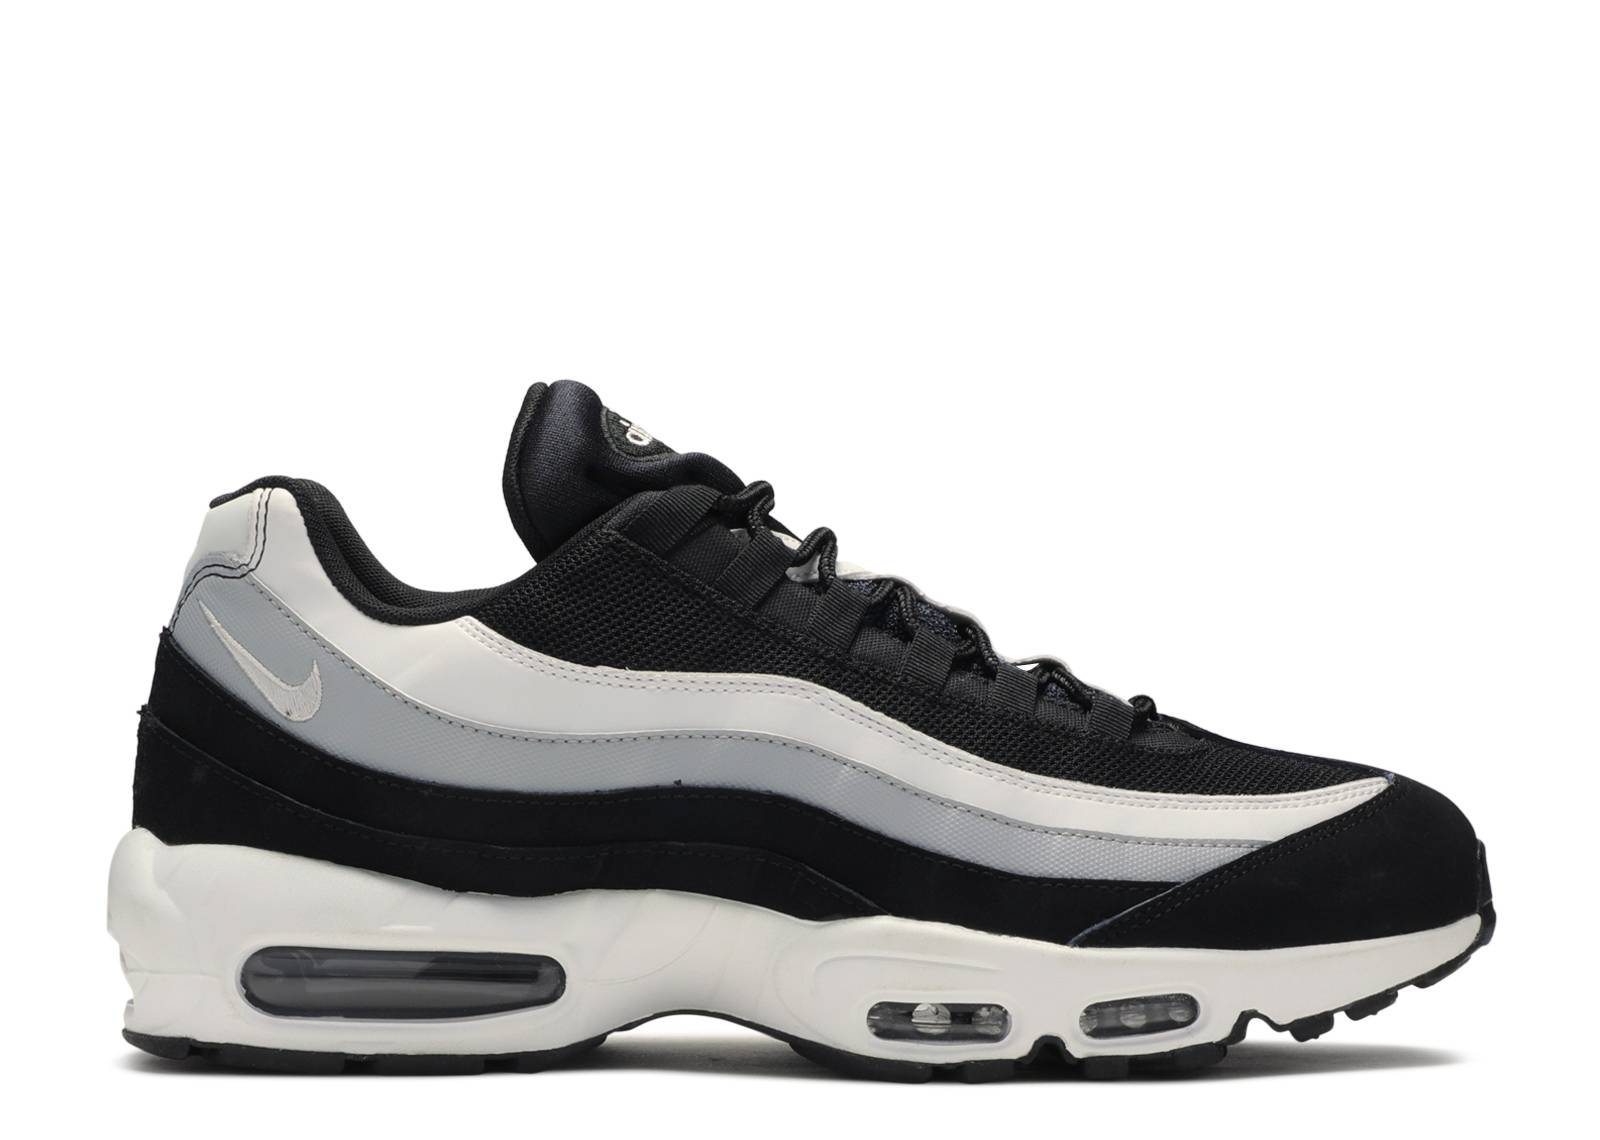 cheap prices save up to 80% wholesale Nike Air Max 95 Essential - Nike - 749766 038 - black/wolf ...